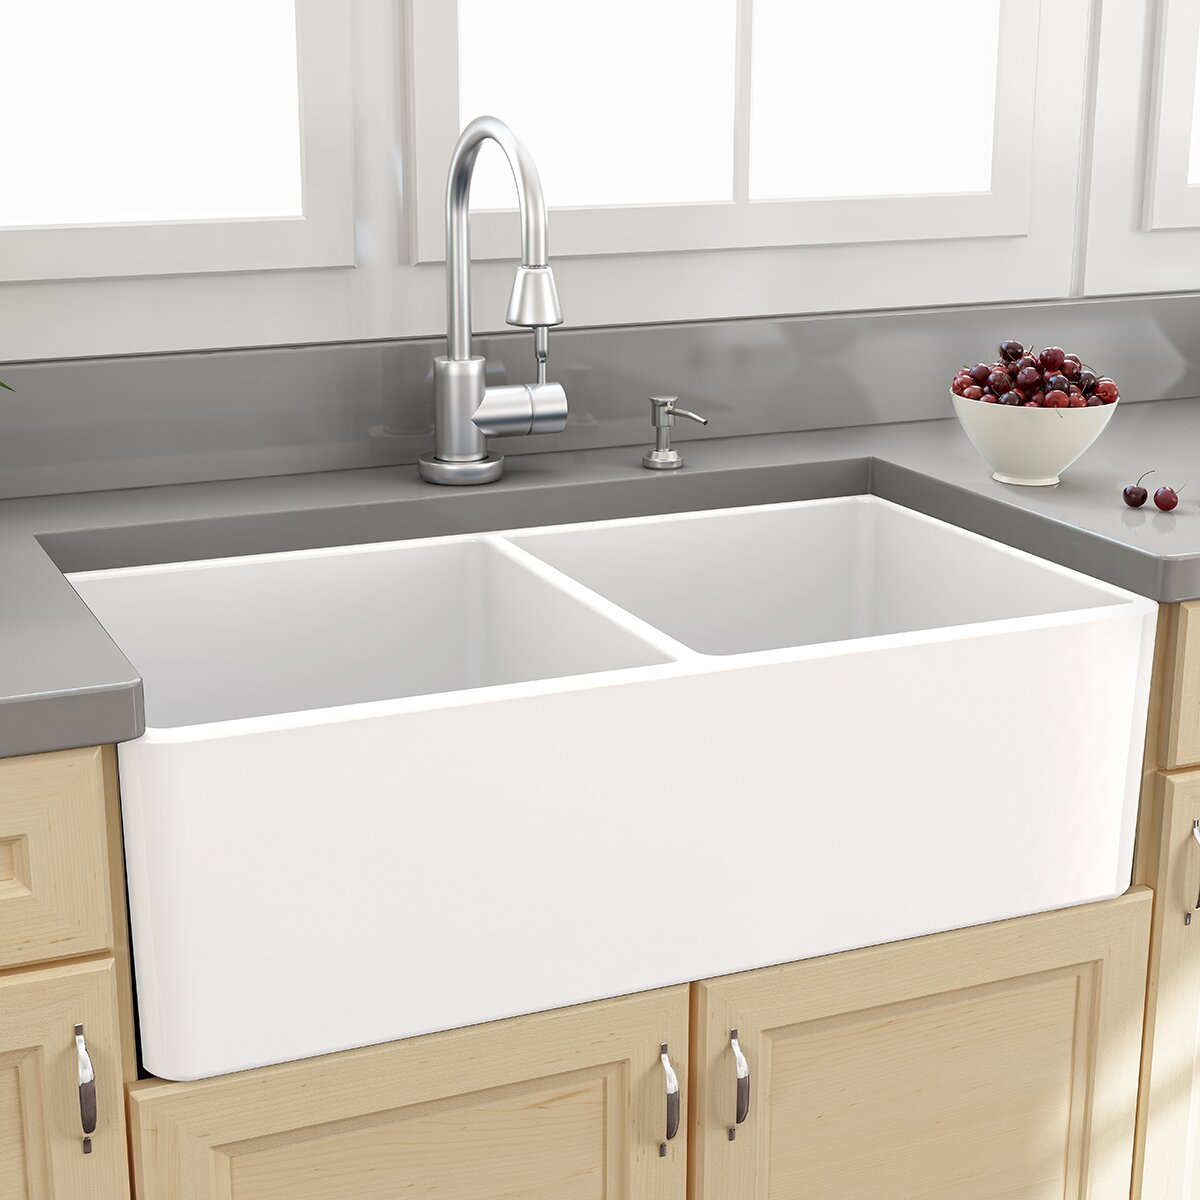 "Nantucket Sinks Cape 33"" X 18"" Double Bowl Kitchen Sink"